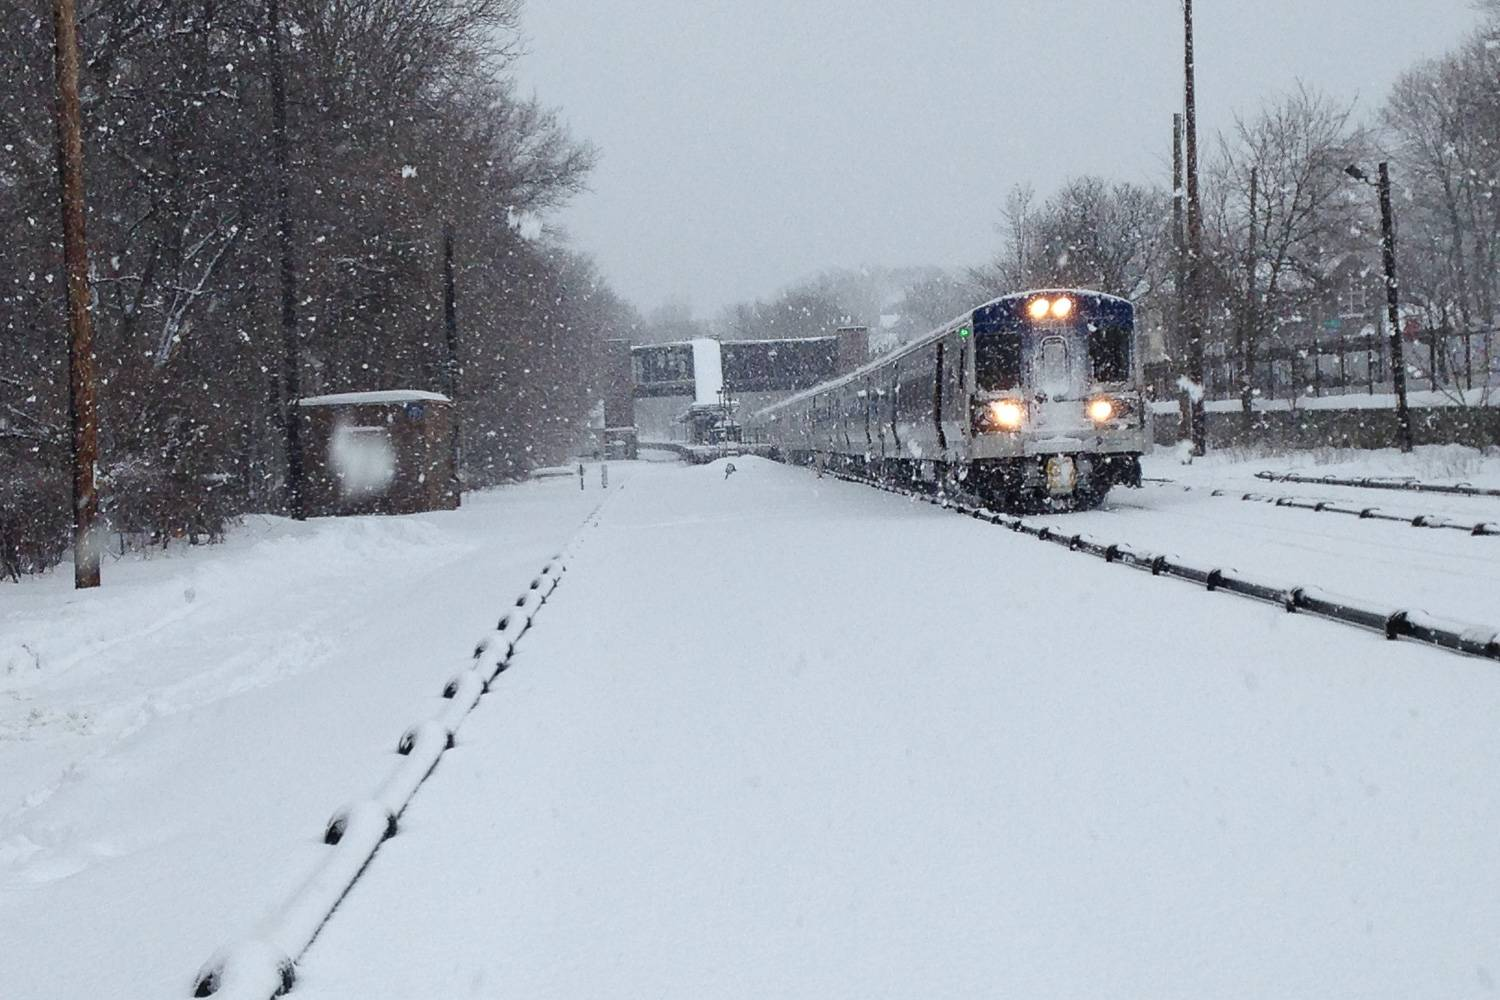 Image of a train on snow covered rail road tracks (Photo Credit: Metropolitan Transportation Authority)